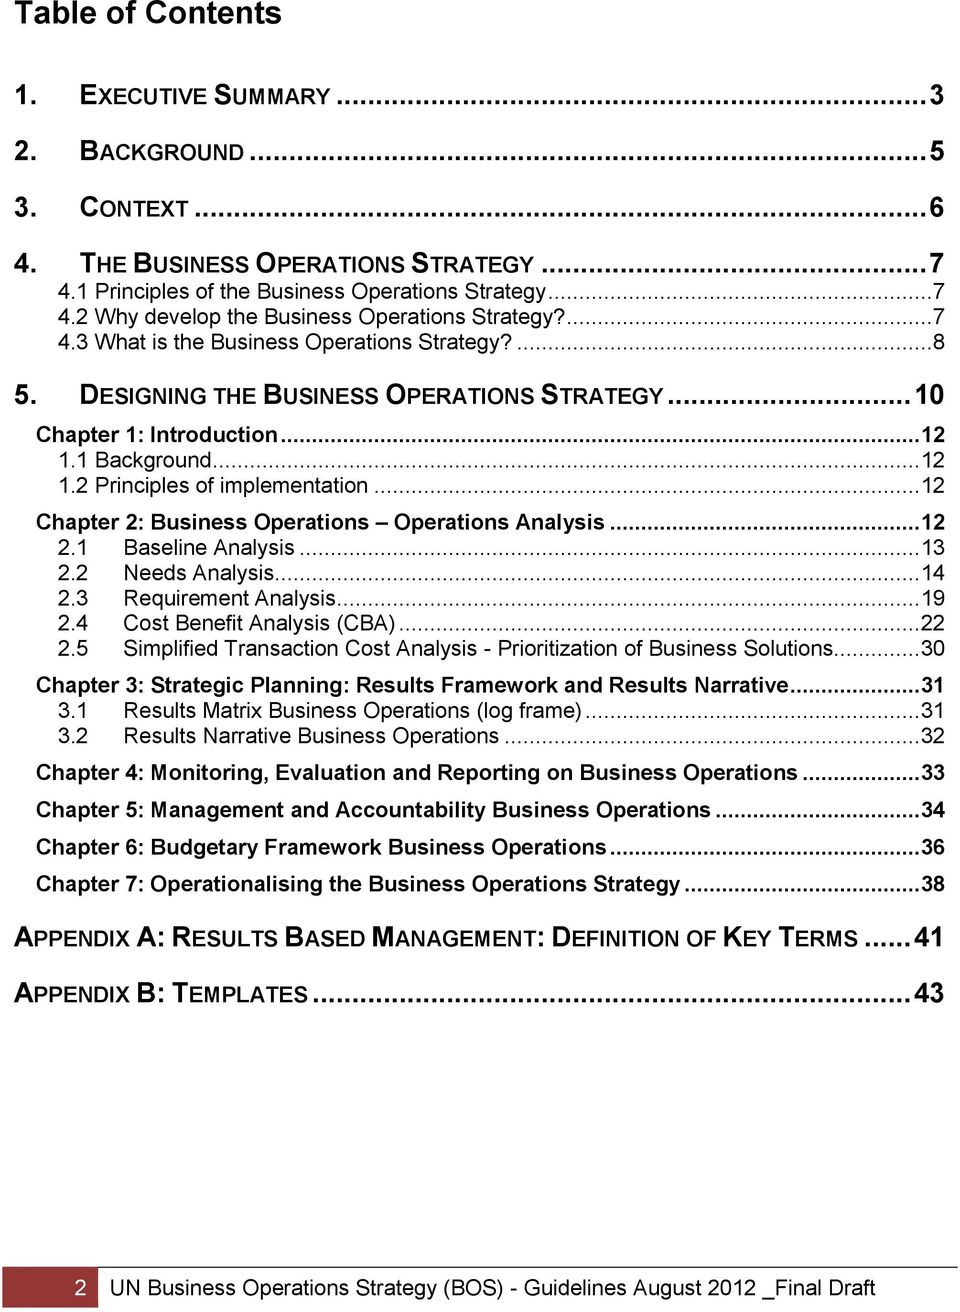 .. 12 Chapter 2: Business Operations Operations Analysis... 12 2.1 Baseline Analysis... 13 2.2 Needs Analysis... 14 2.3 Requirement Analysis... 19 2.4 Cost Benefit Analysis (CBA)... 22 2.